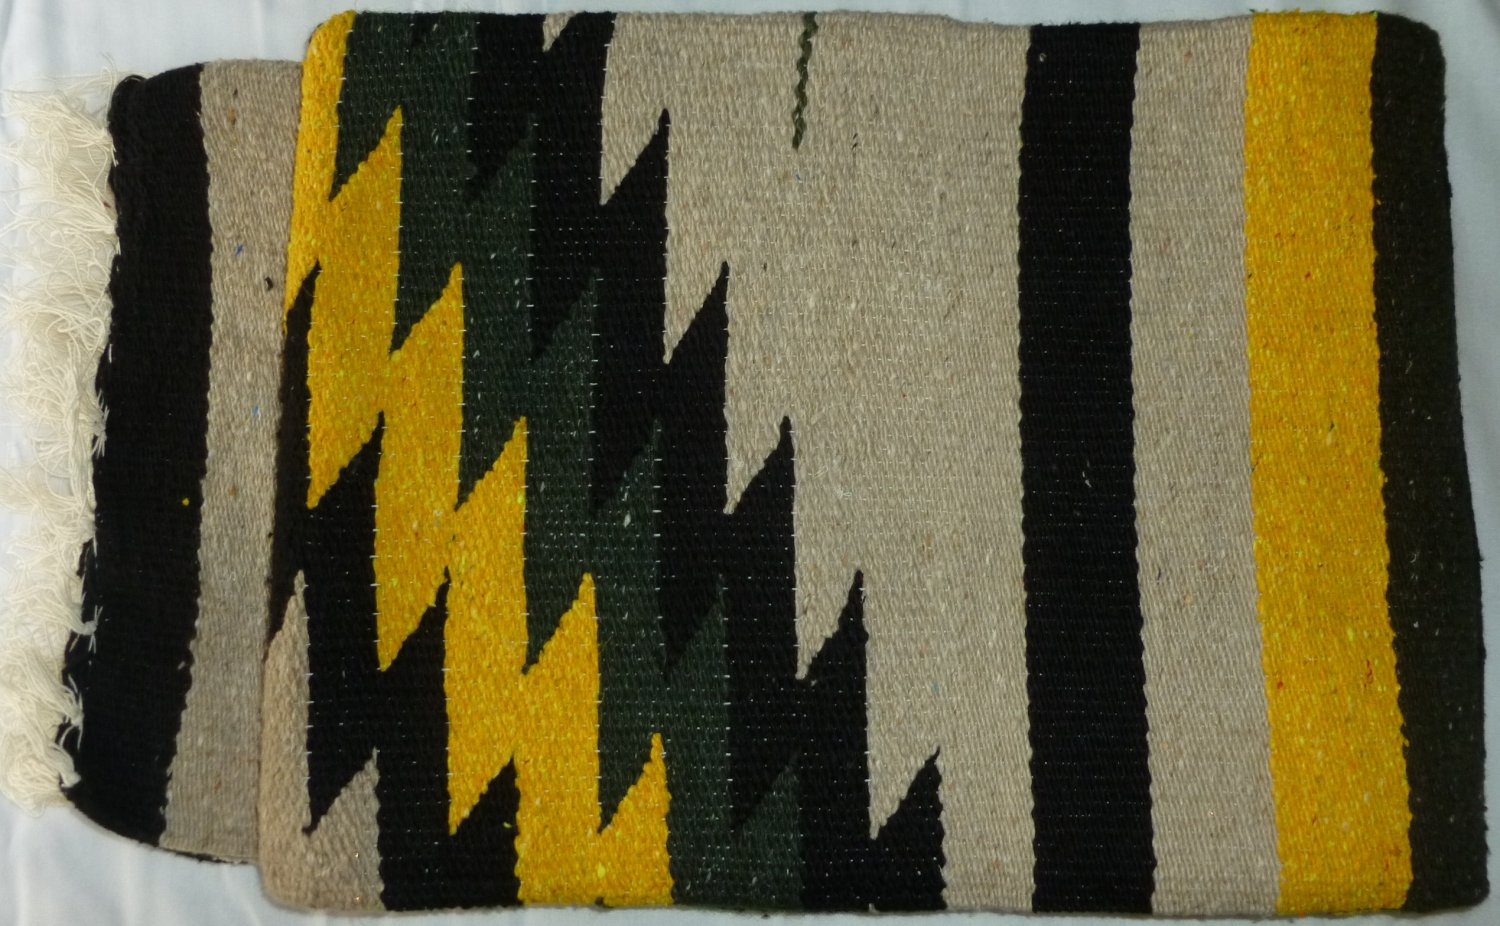 Southwestern Mexican Large serape blanket pilates blanket multi color Yellow Black Pattern